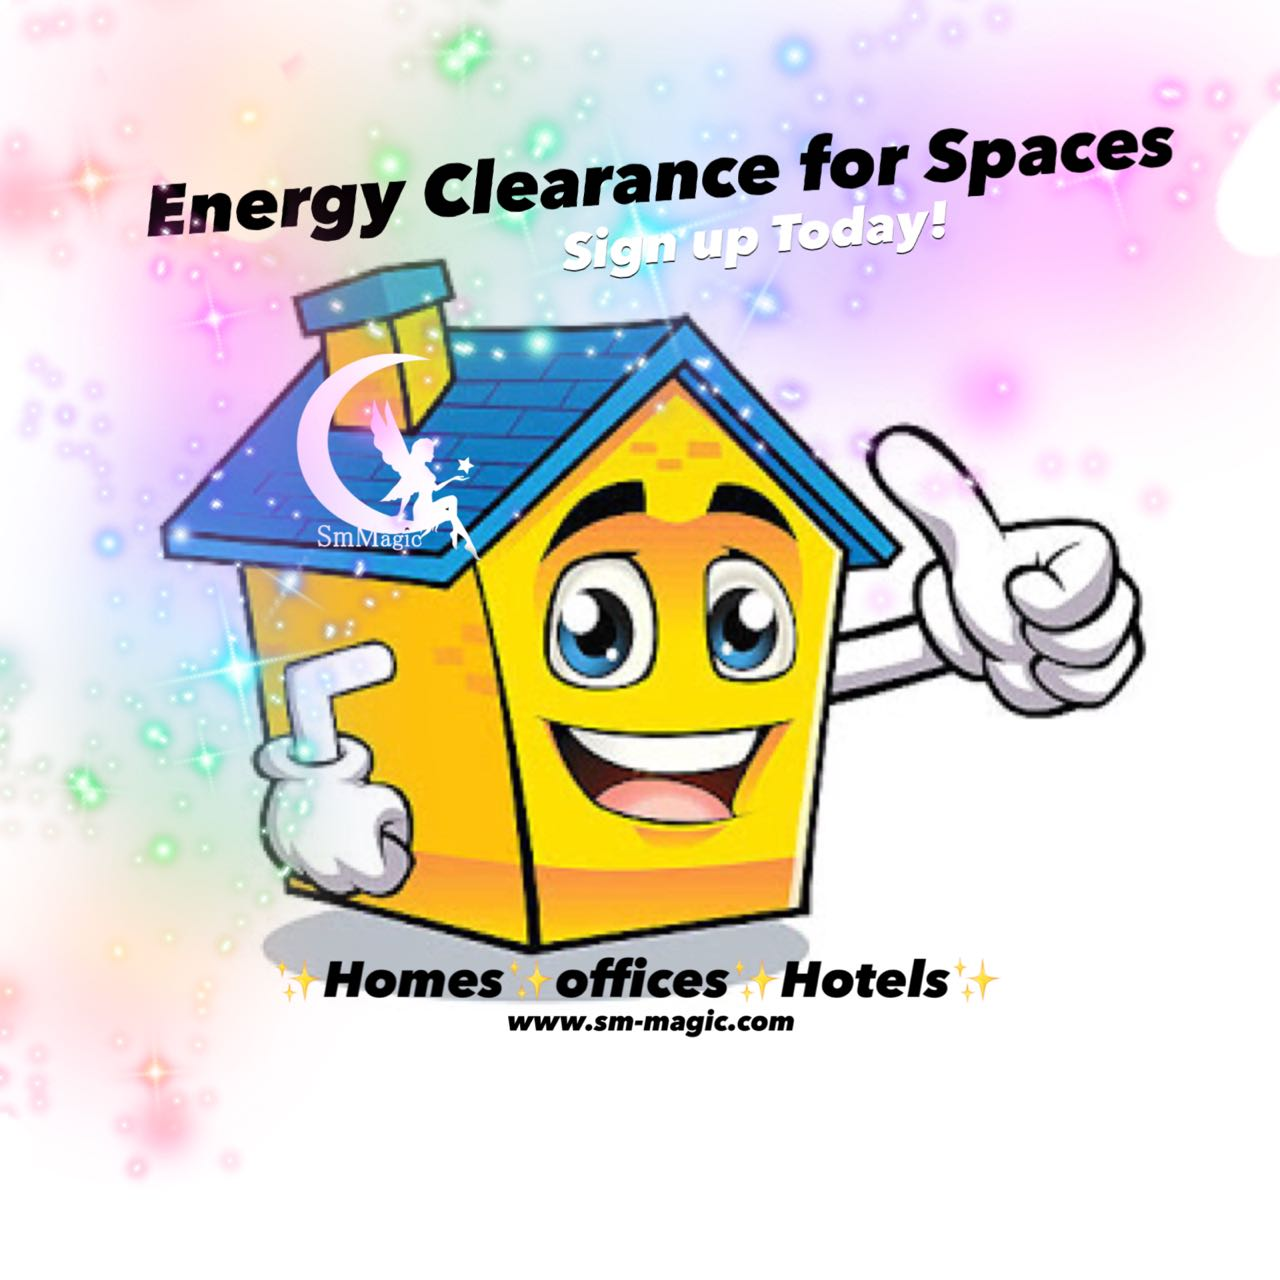 ENERGY CLEARANCE FOR SPACES